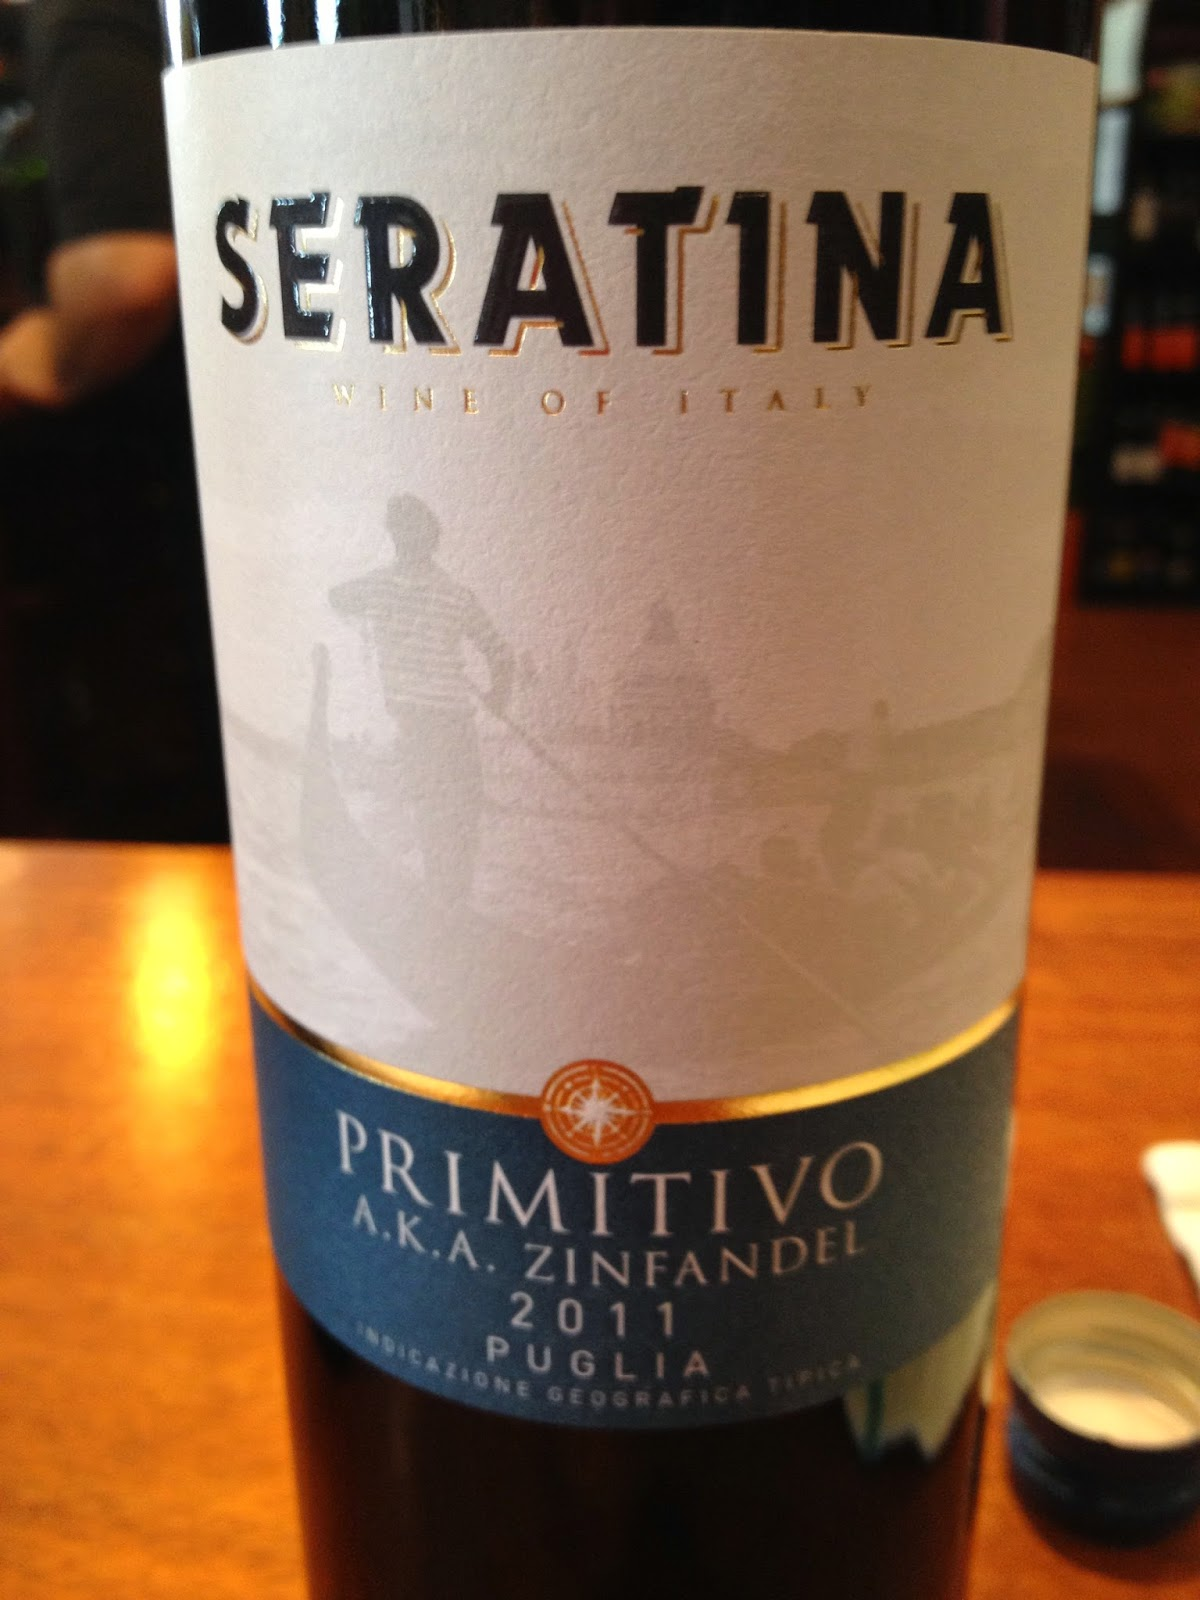 2011 Seratina Primitivo wine from Puglia